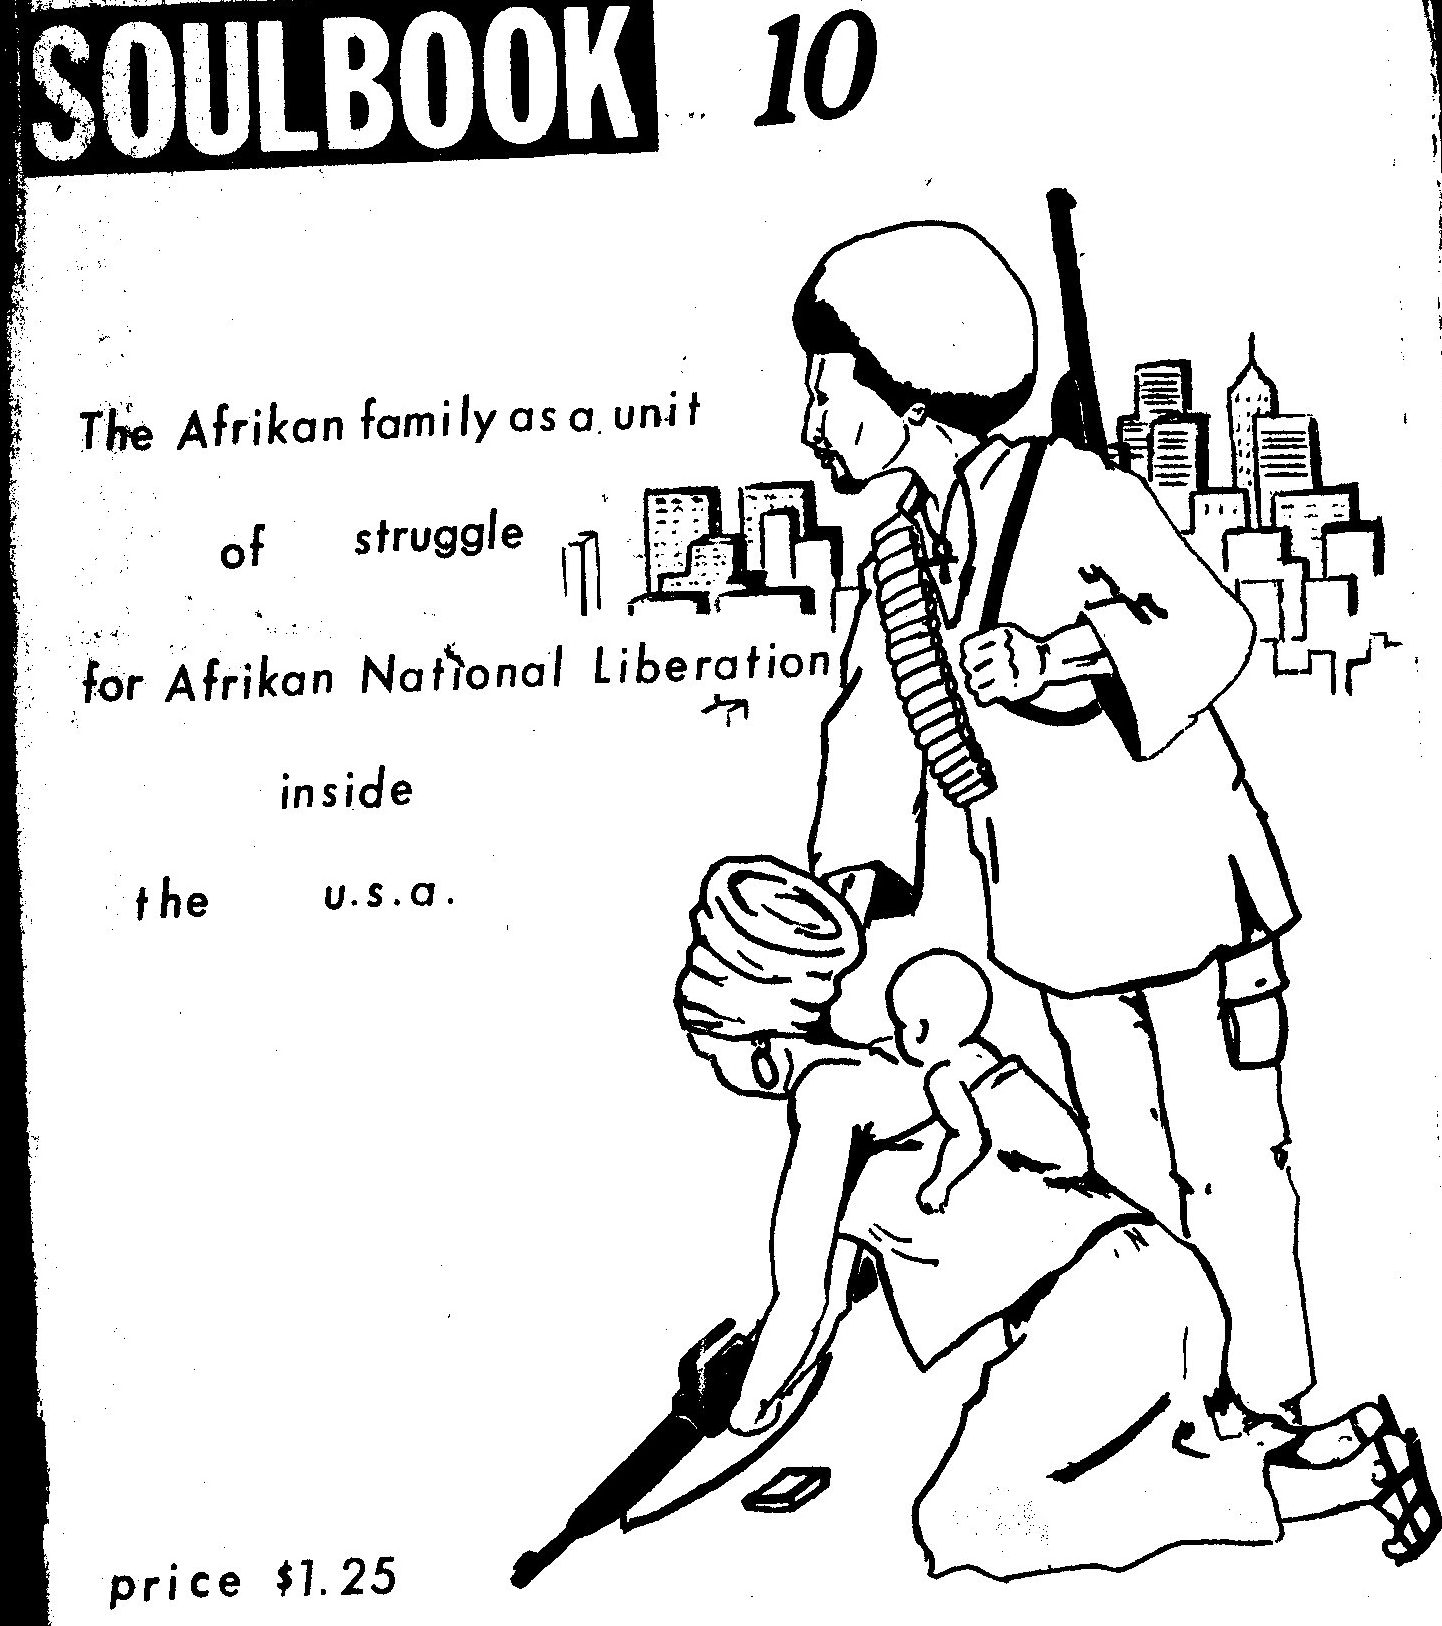 dom archives search engine periodical that features essays poems reflections cartoons and other artistic works intended to further the cause of the black liberation movement